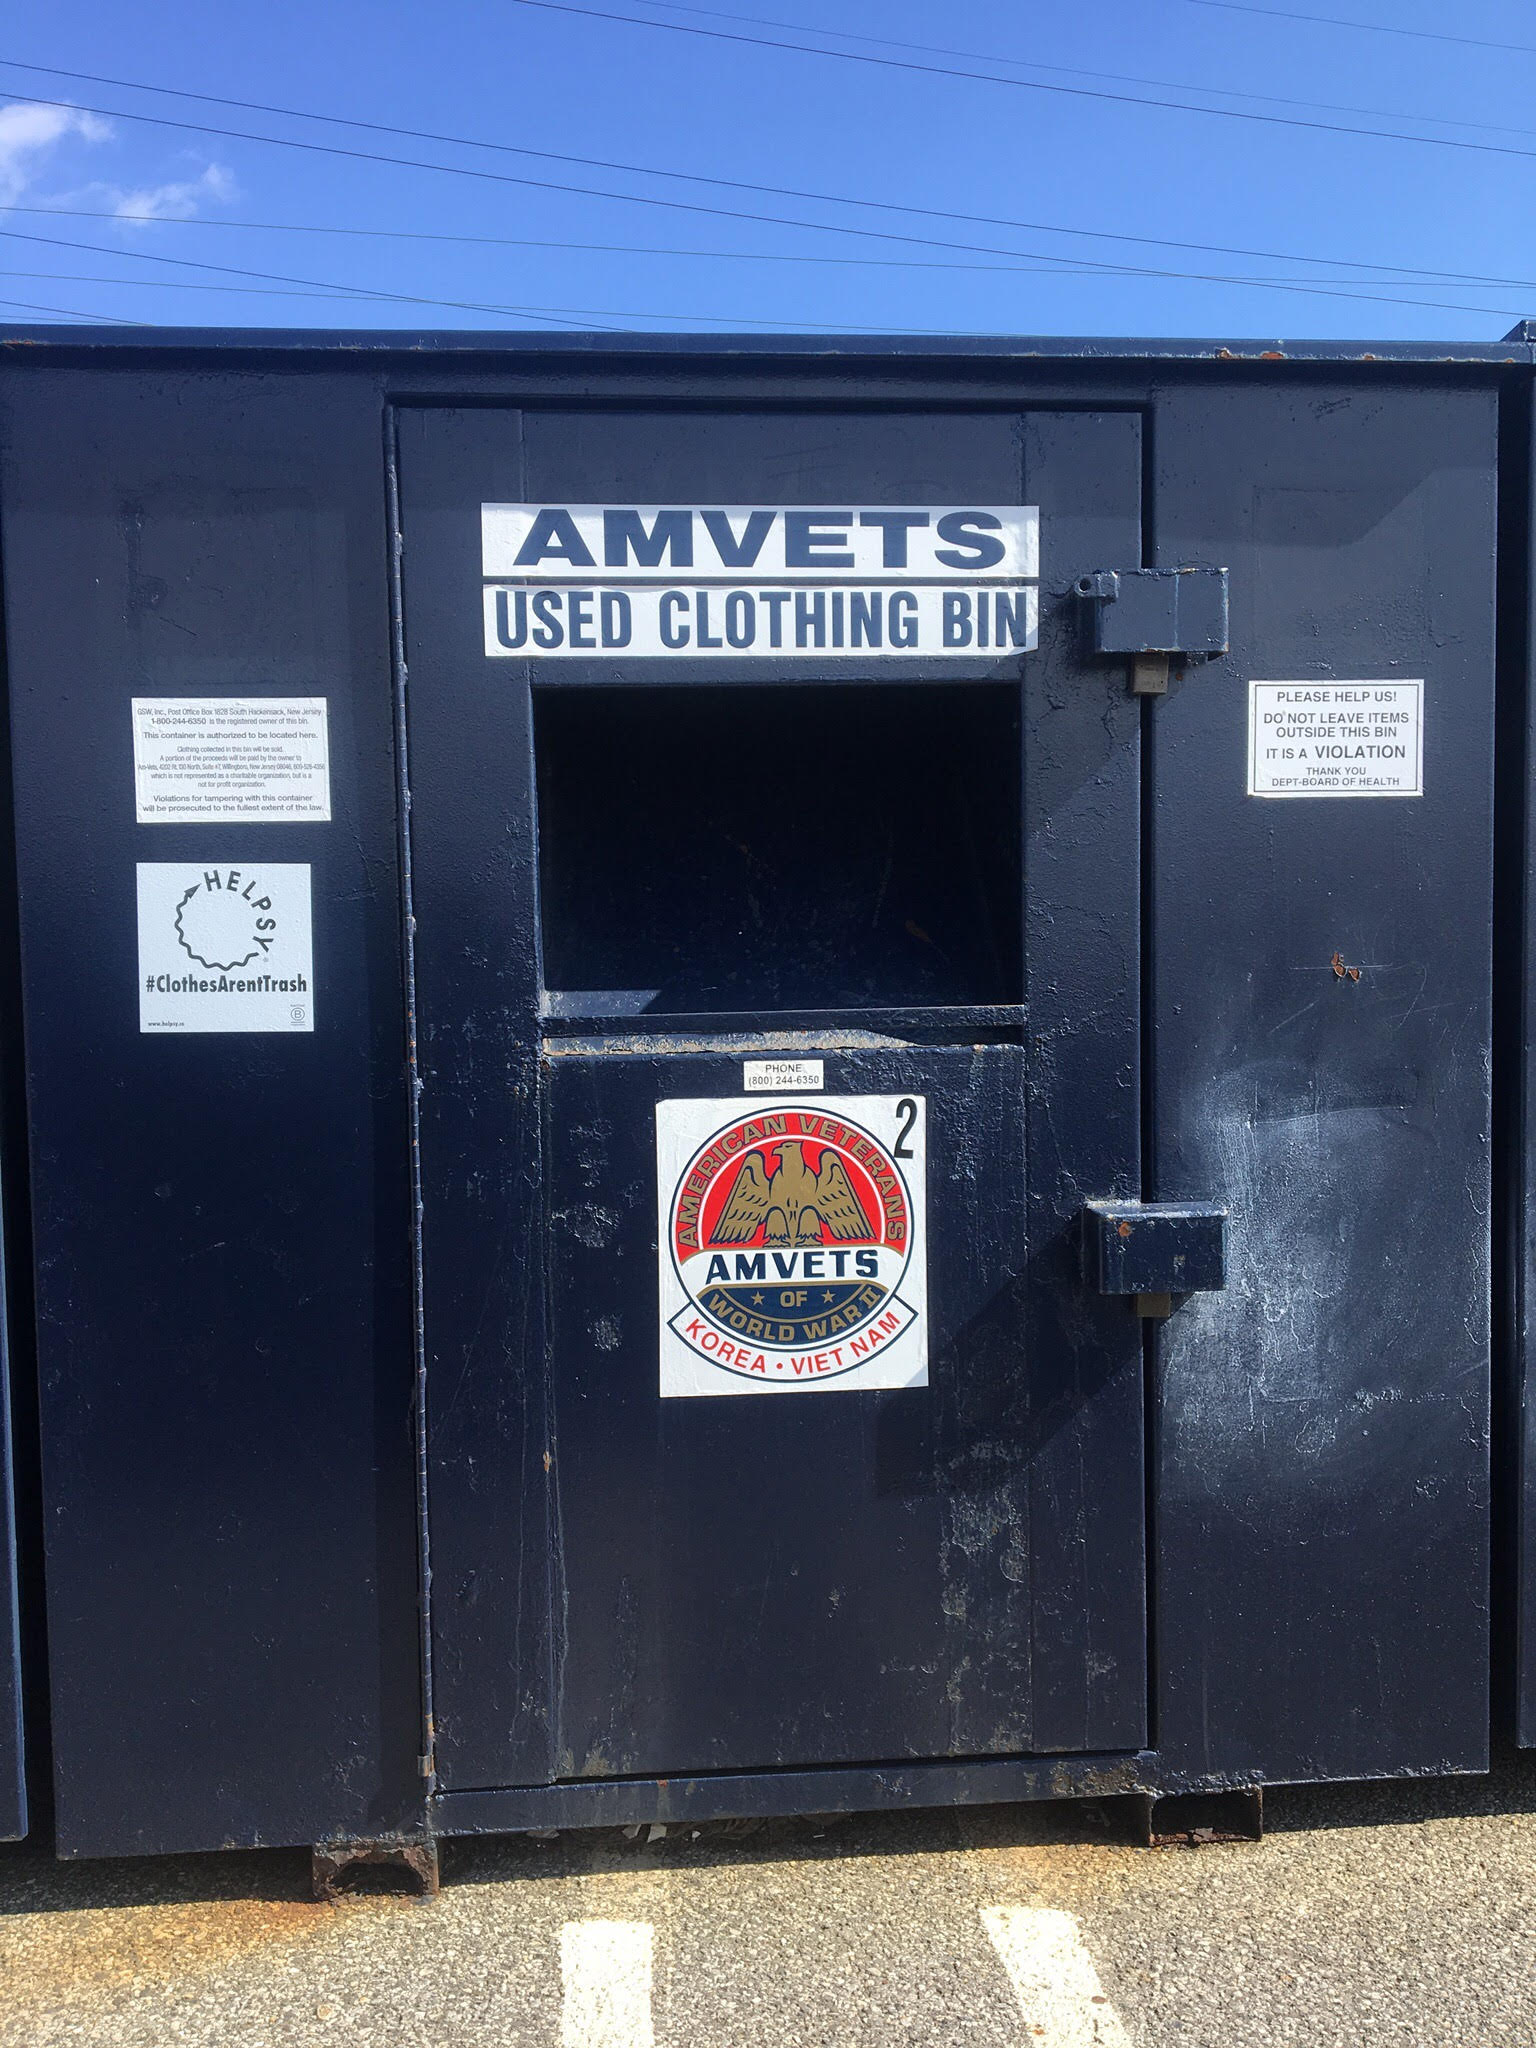 There are several bins located in the parking lot across from the Home Depot in Phillipsburg that benefits the AMVETS Charity Organization   1209 US-22, Phillipsburg, NJ 08865